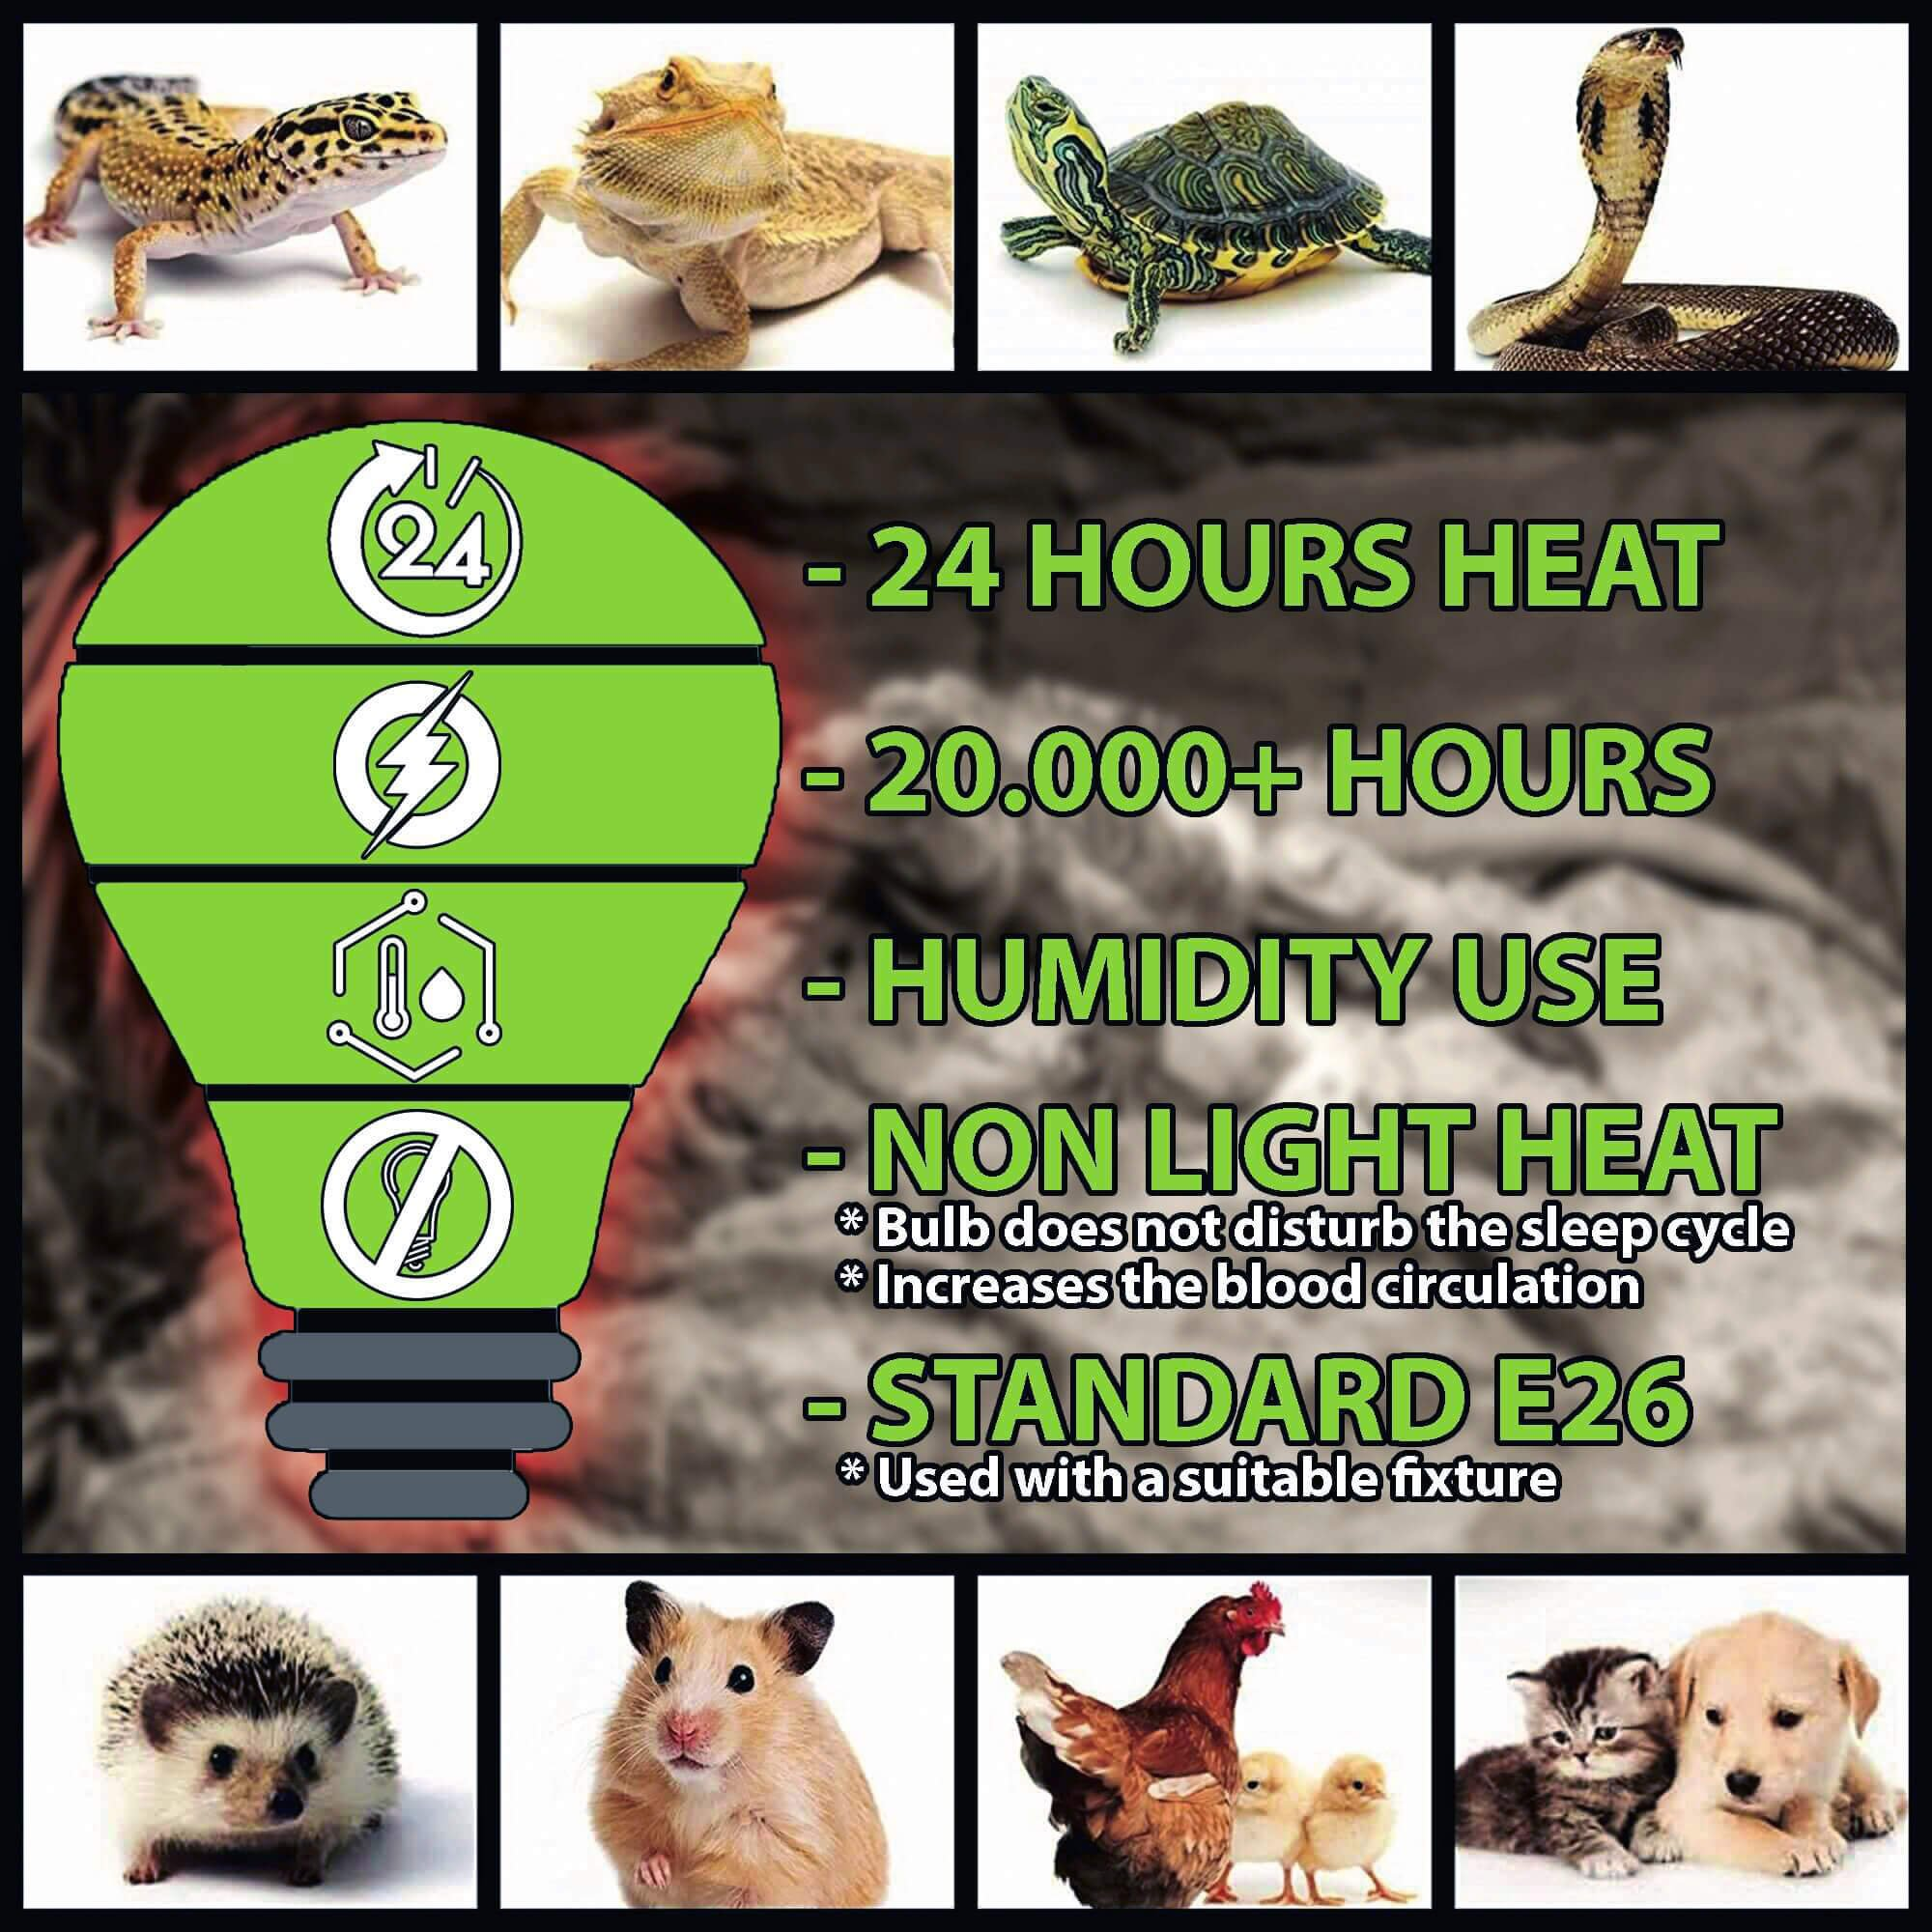 Ceramic Infrared Heat Emitter Lamp 200W | Reptile Brooder Chicken Coop Outdoor Pet Heater Bulb | 20,000+ Hours Power Lamps by Promondi by Promondi (Image #3)